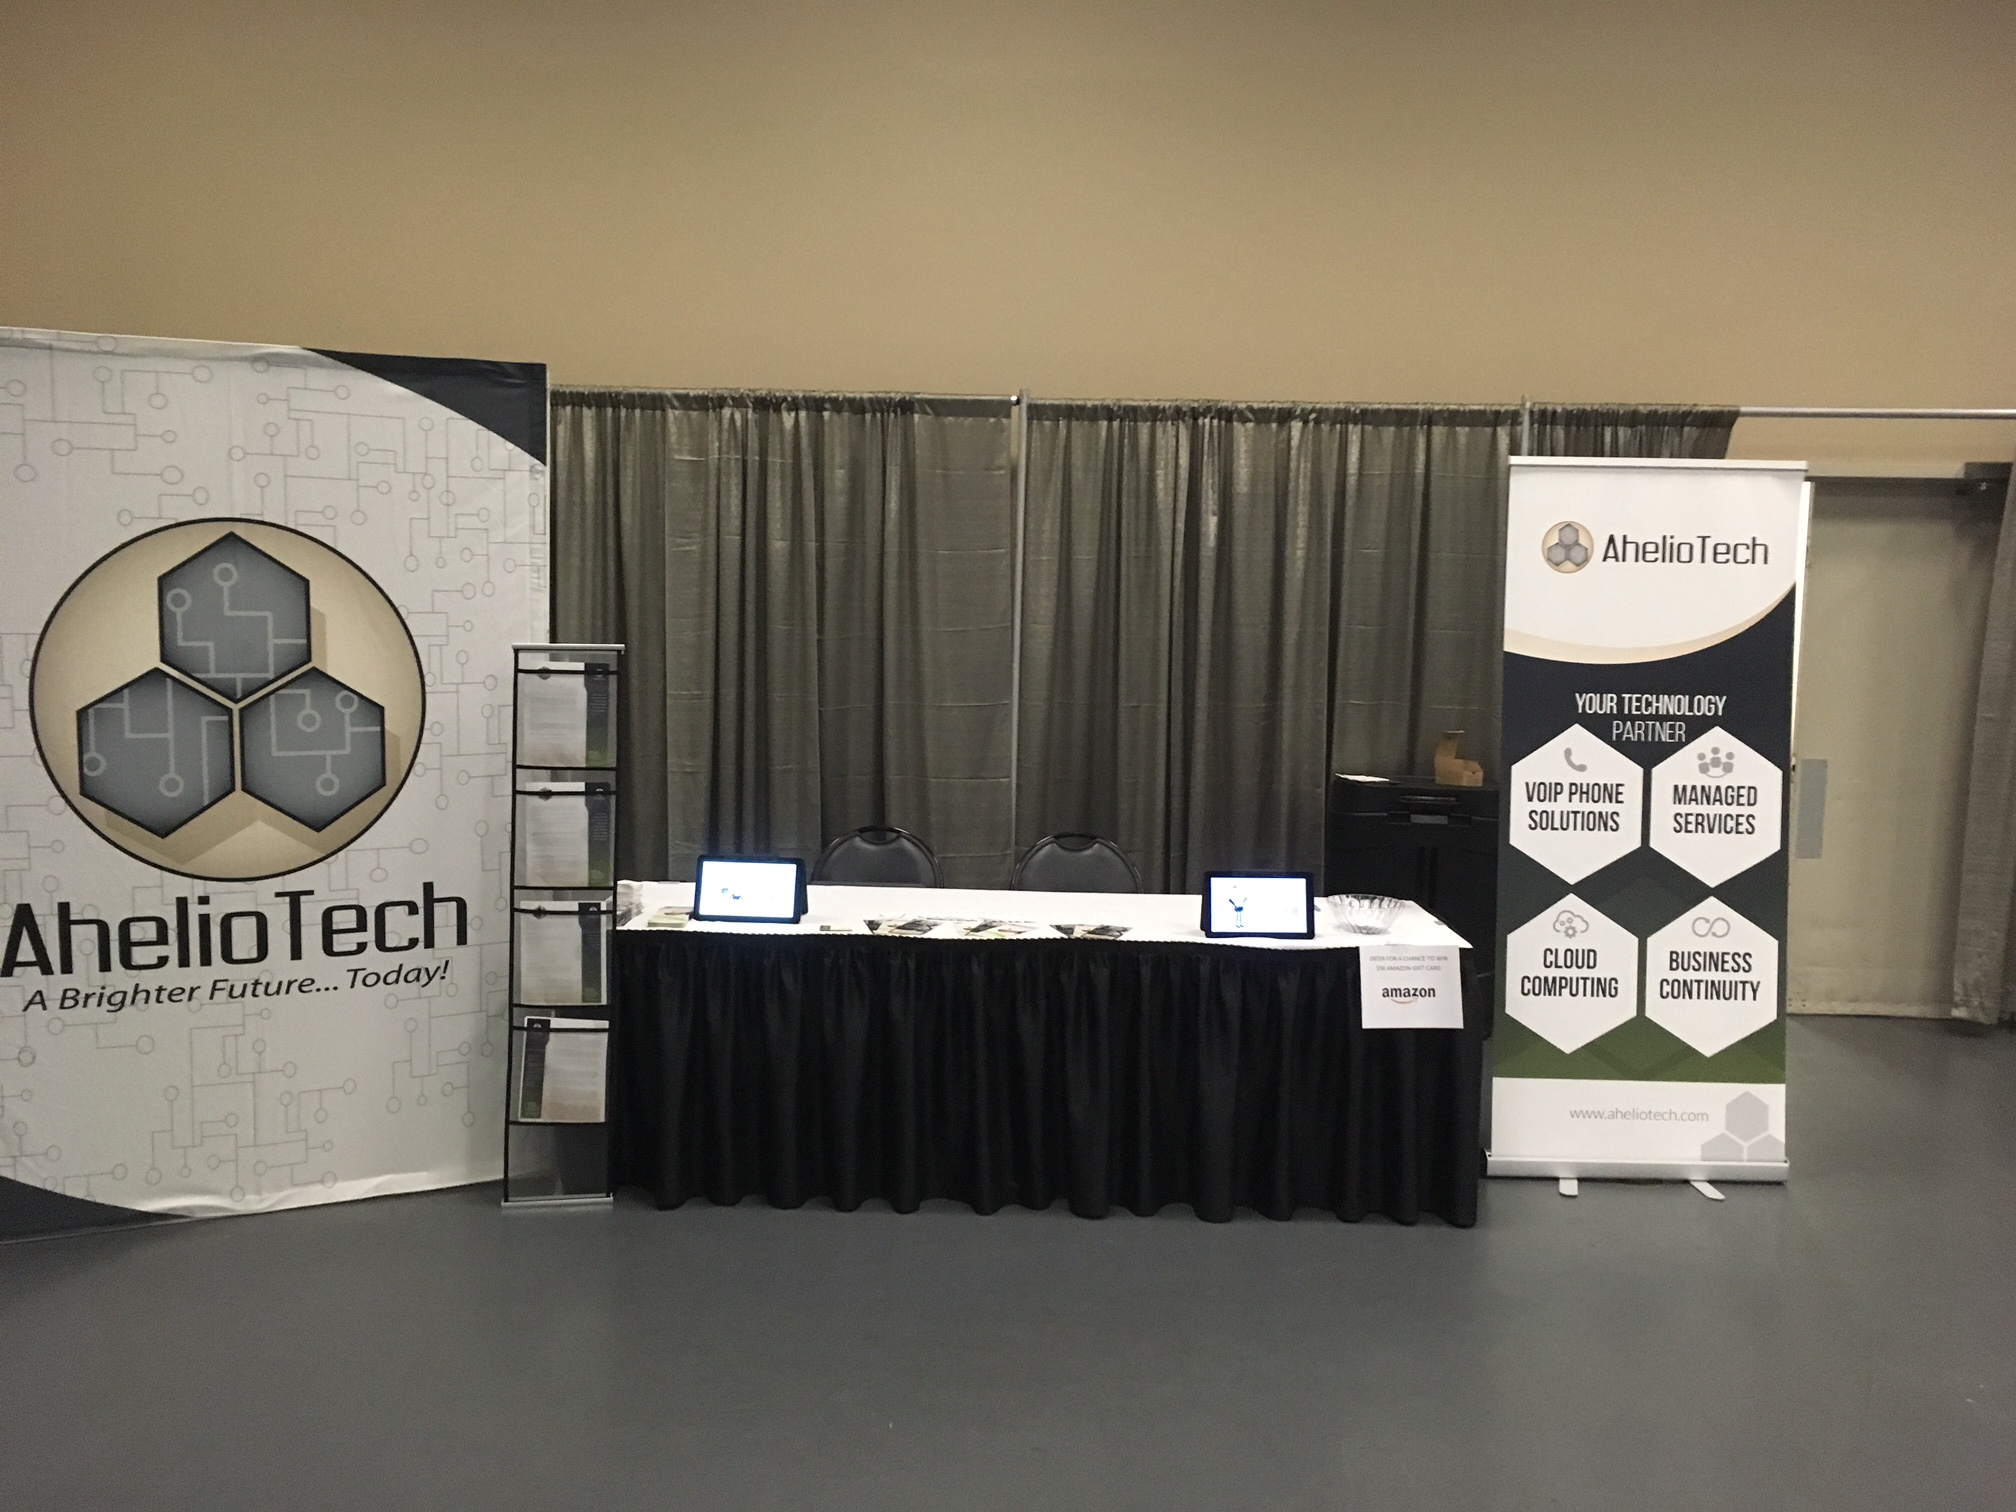 AhelioTech is at The Lima Regional Information Technology Alliance Conference - AhelioTech